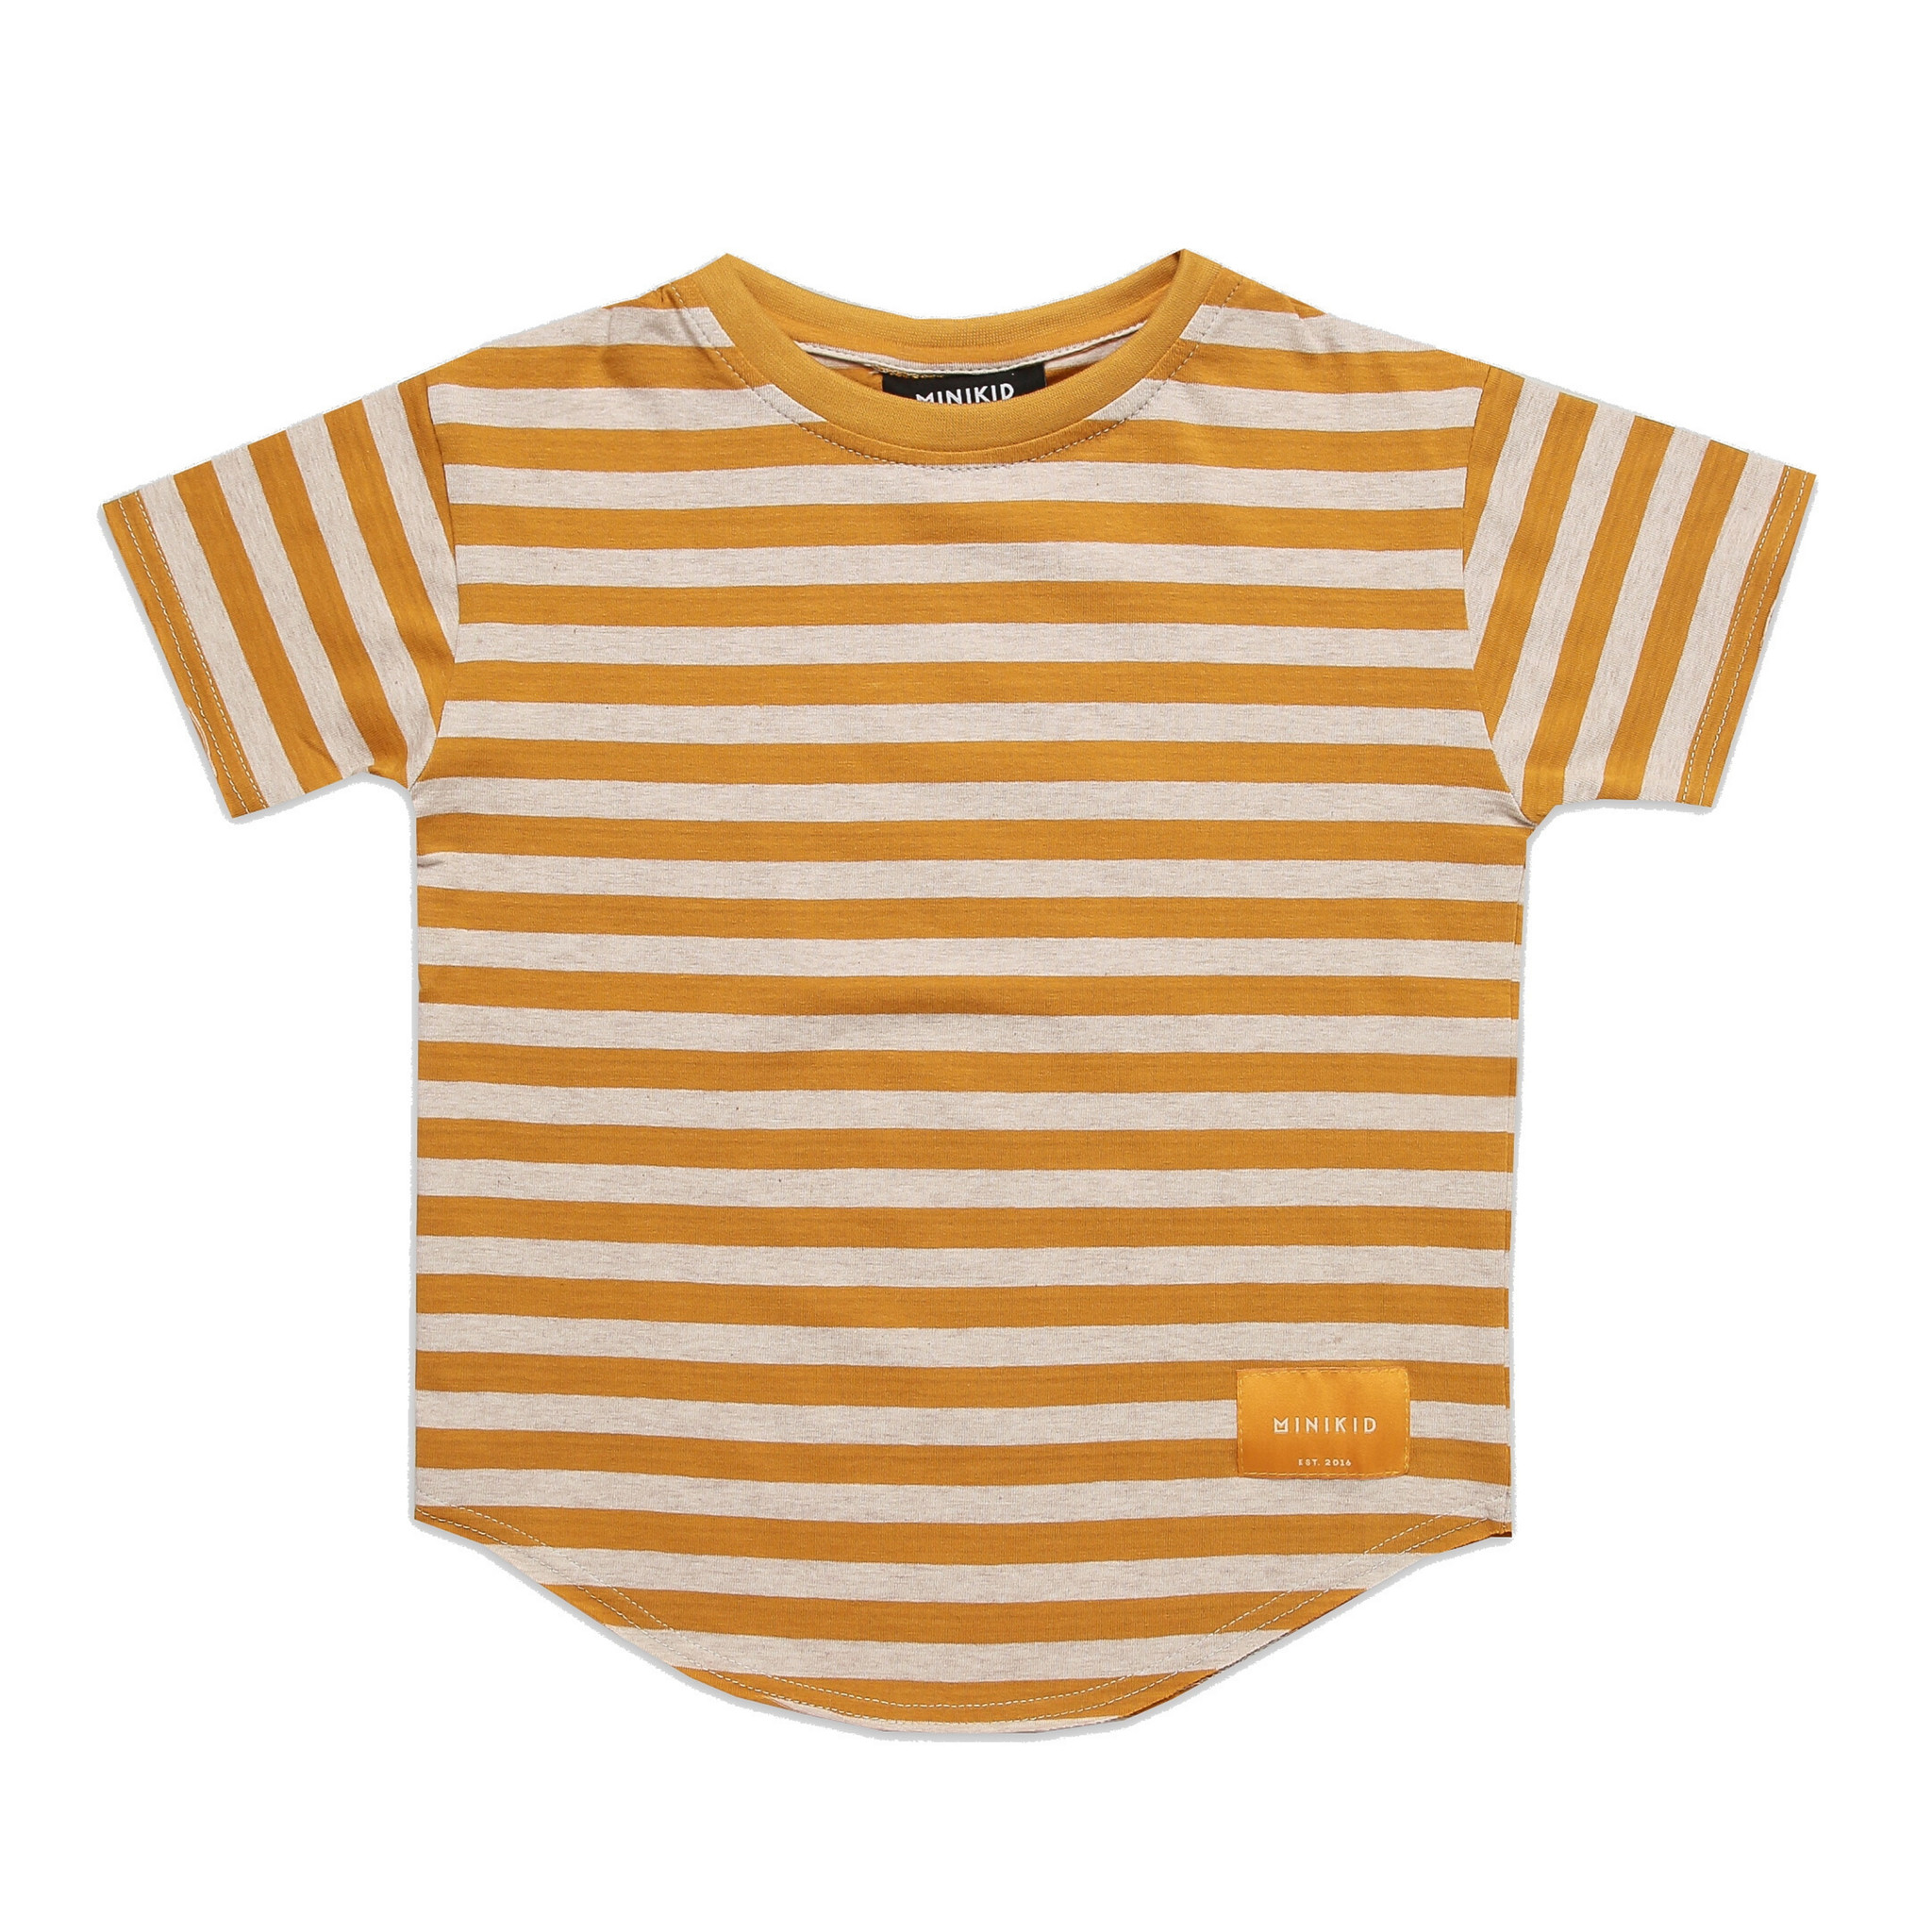 Minikid EXTRA LONG T-SHIRT | YELLOW STRIPED SHIRT FOR CHILDREN | MINIKID